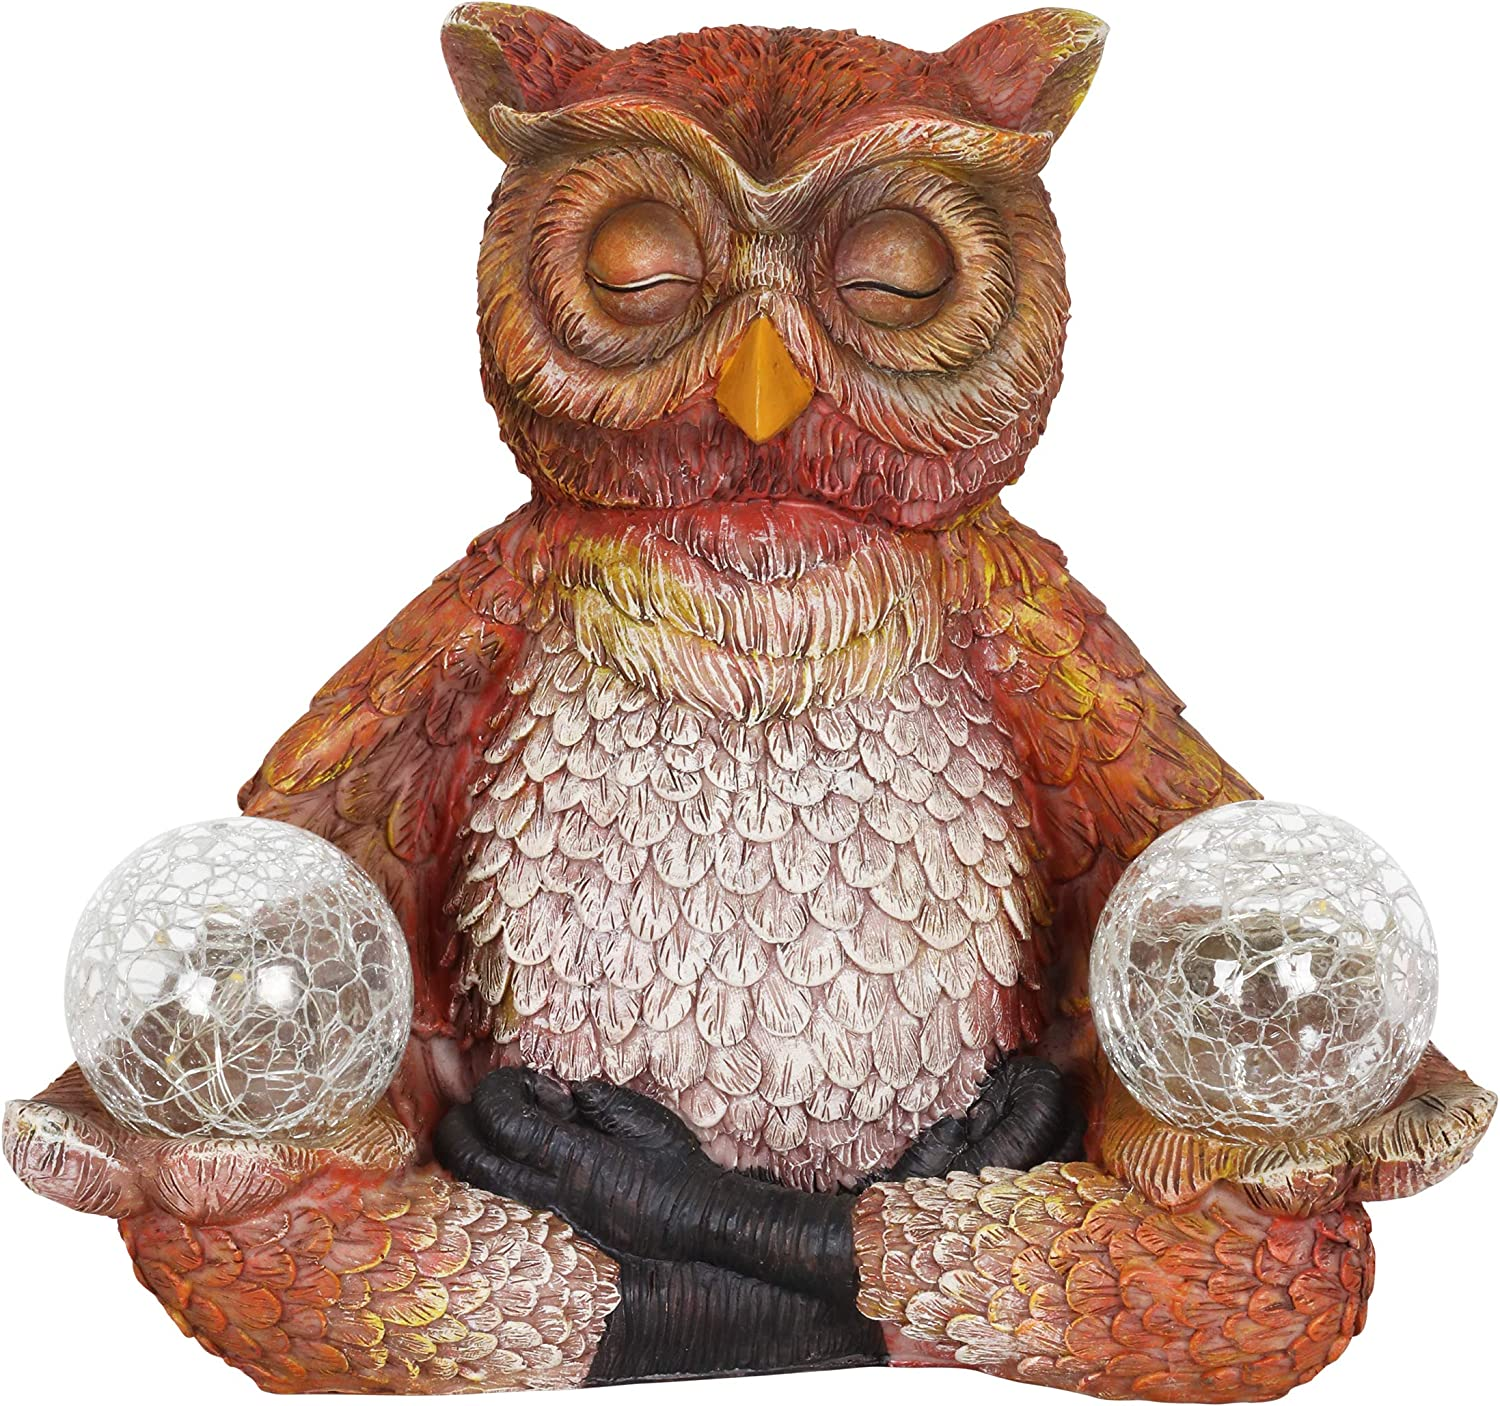 """Exhart Solar Yoga Owl Holding 2 Glass Balls Garden Statue - Hand-Painted Resin Statue of an Owl in Cross-Legged Meditation Pose w/Solar LED Lights Glass Orbs, 11"""" Wide x 9"""" Inches Tall"""